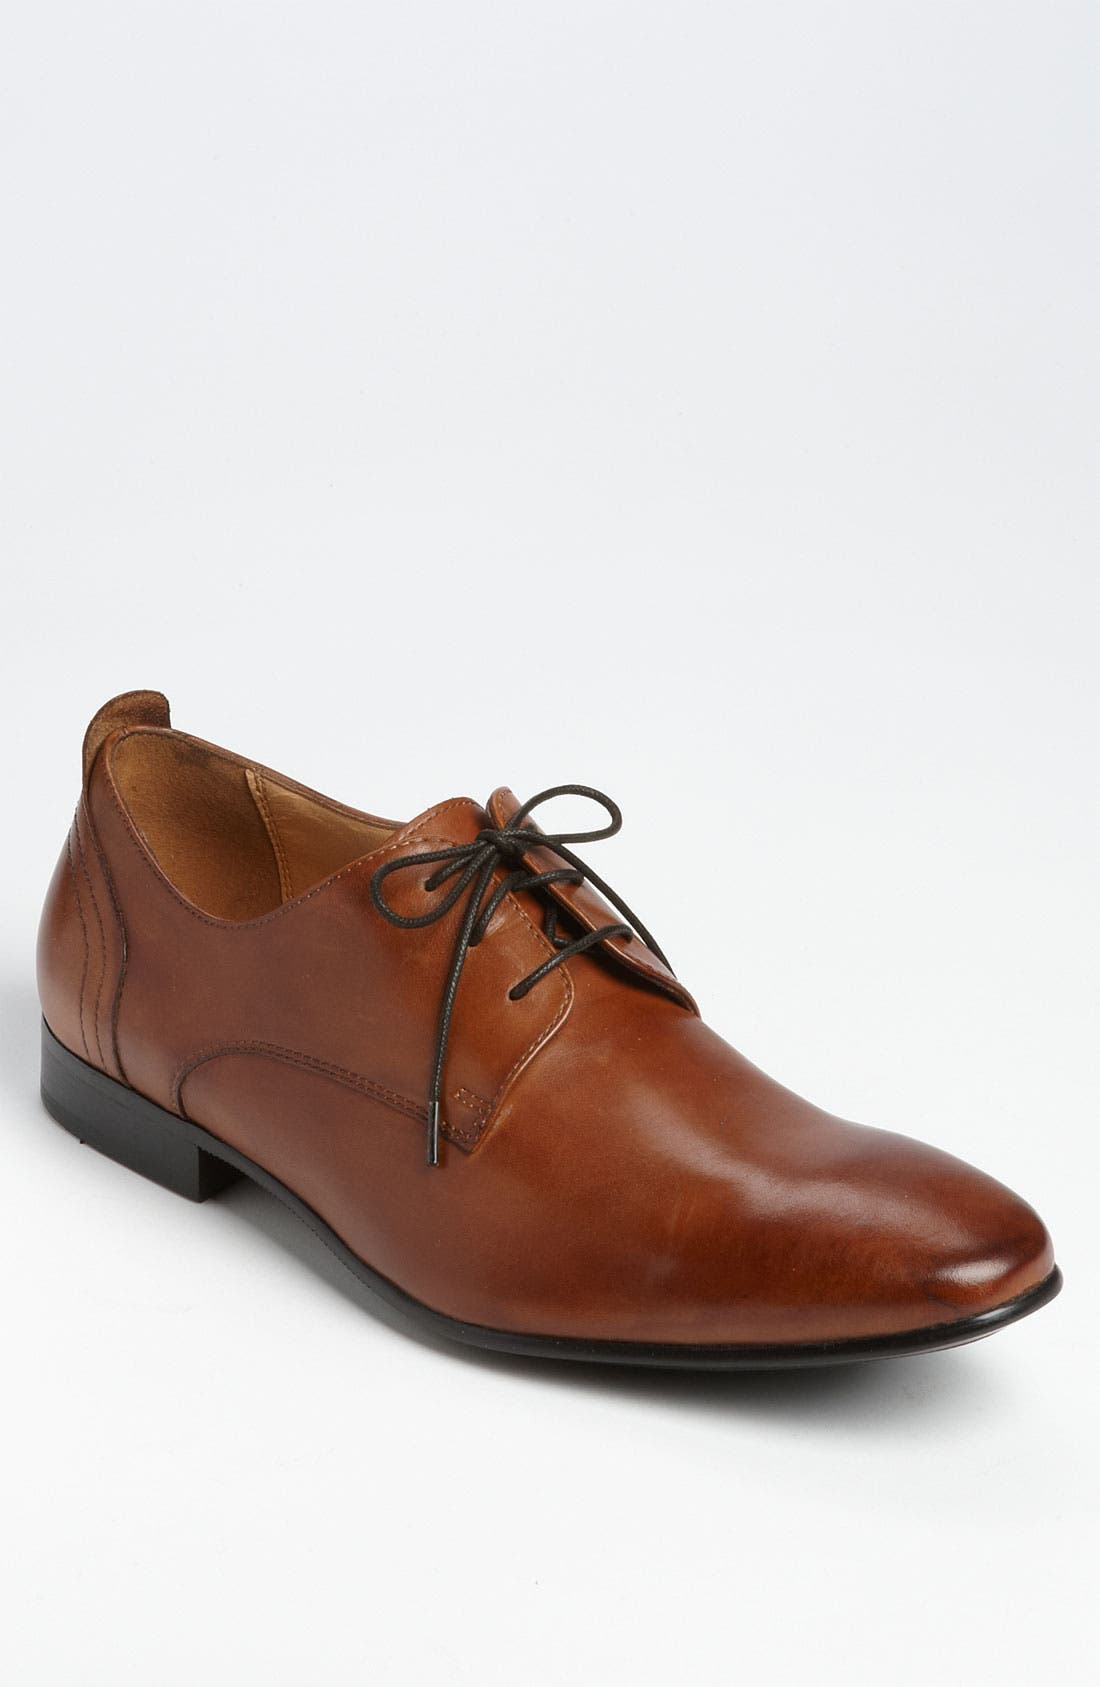 Main Image - ALDO 'Lehane' Oxford